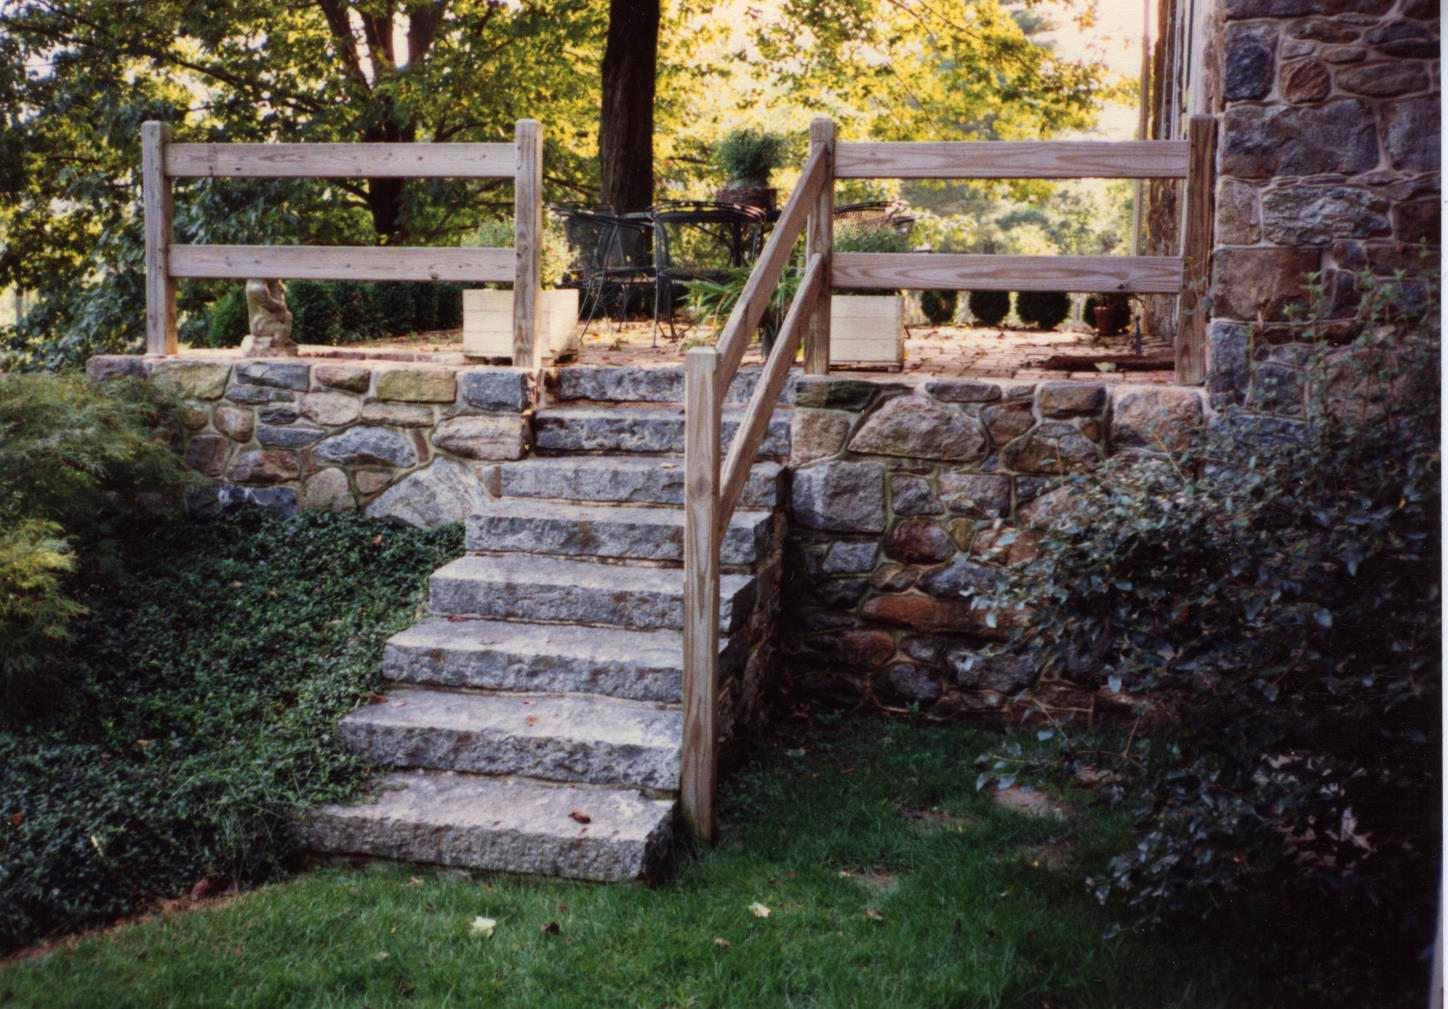 A Stone Wall And With Stone Steps Leading Up To A Stone Patio. A Wood